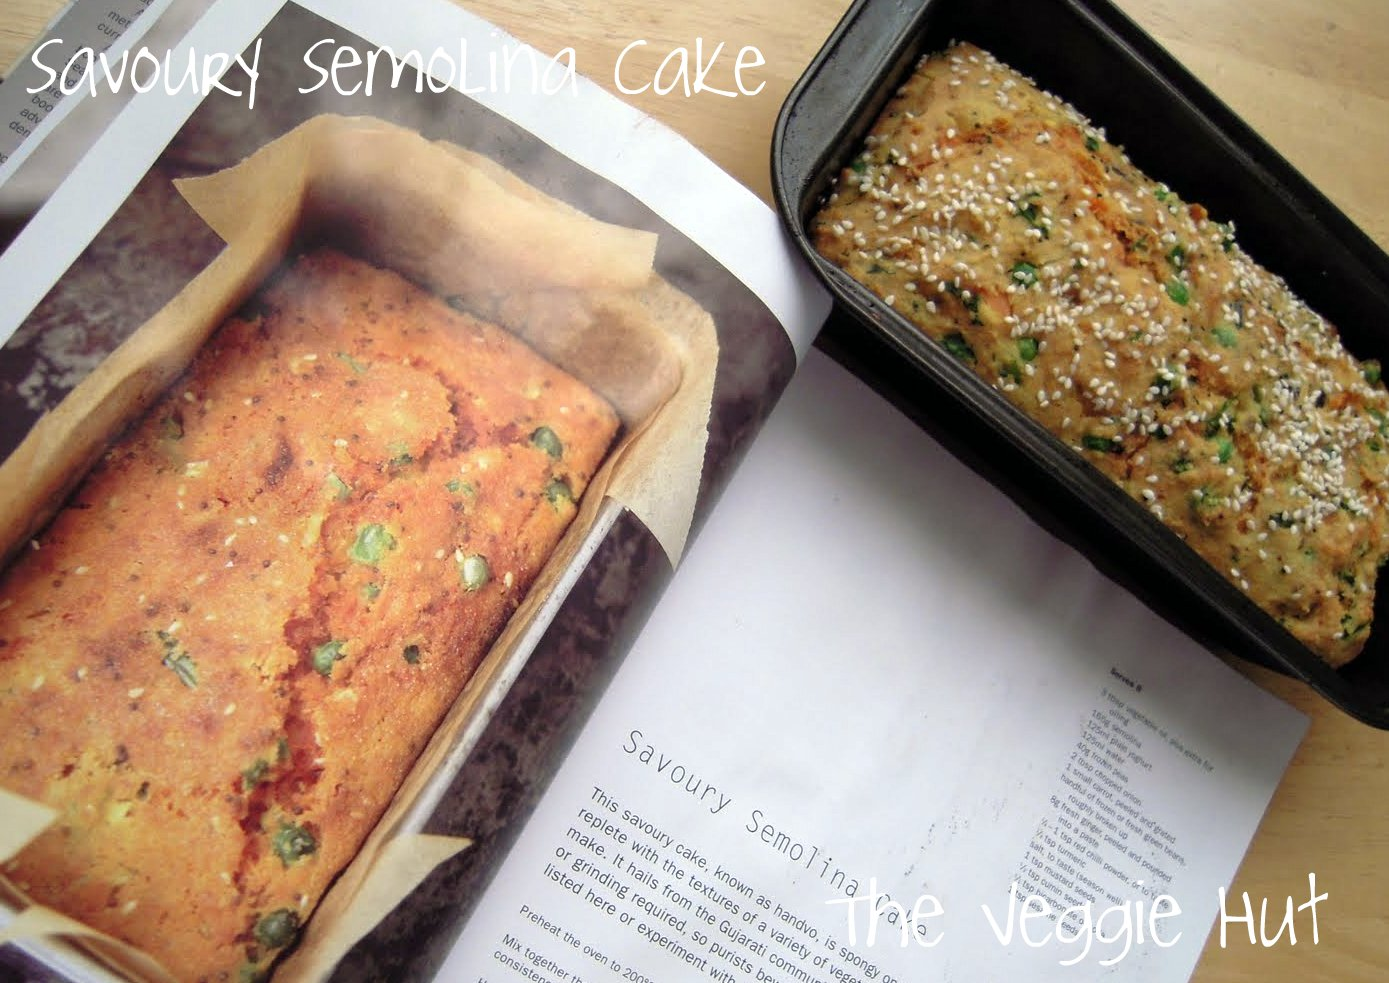 The veggie hut savoury semolina cake 4 the cake is ready when a toothpick inserted in the middle comes out clean and when the edges are crisp leave the cake to cool in the tin forumfinder Choice Image